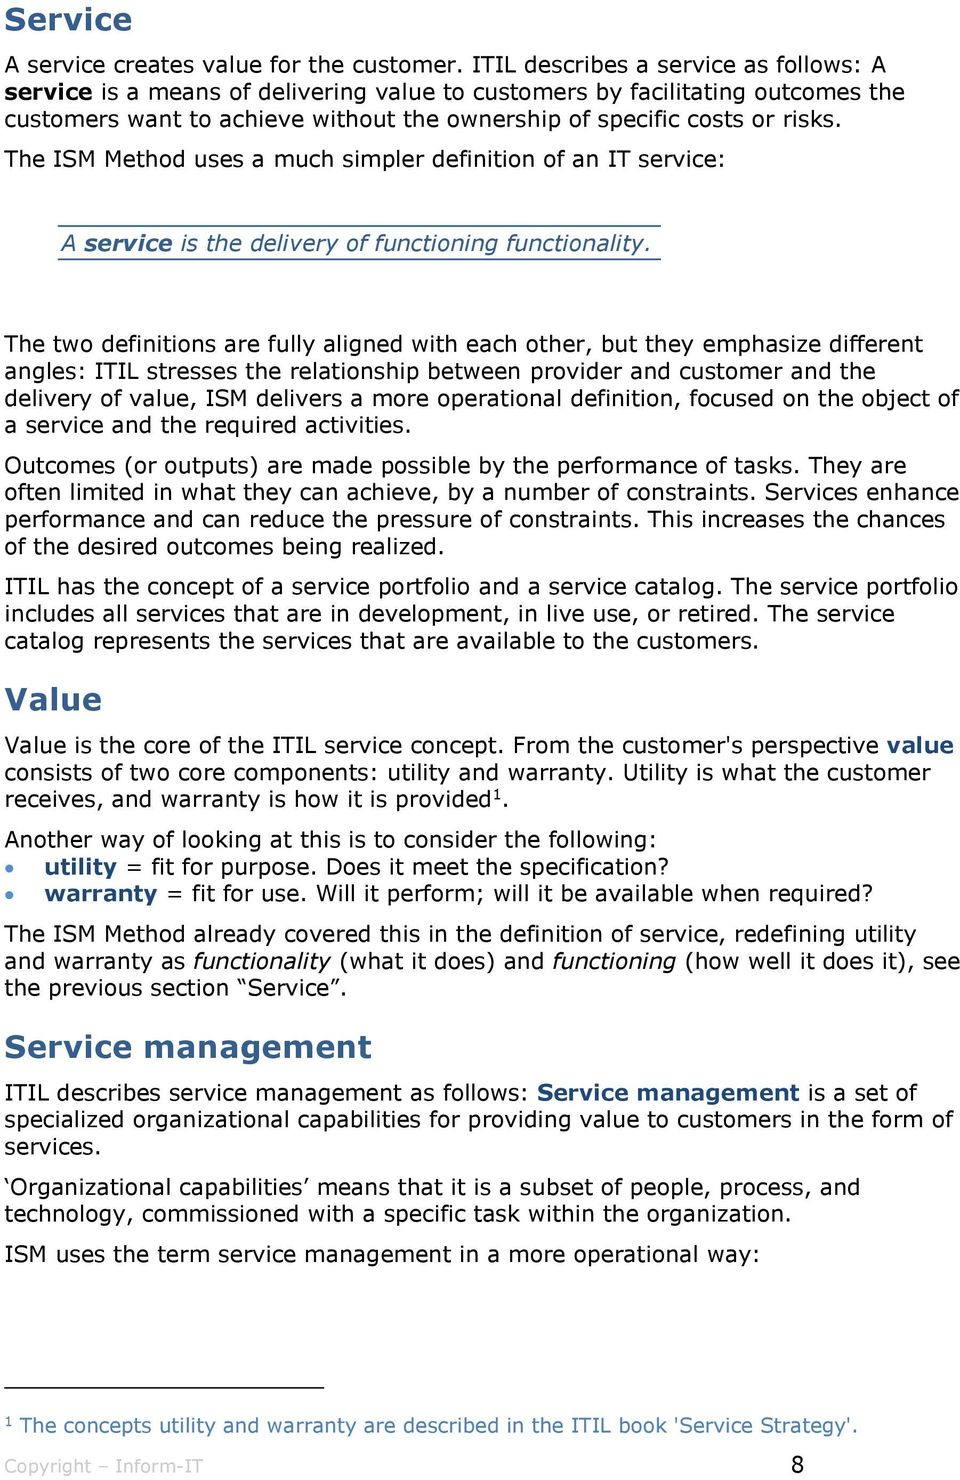 The ISM Method uses a much simpler definition of an IT service: A service is the delivery of functioning functionality.